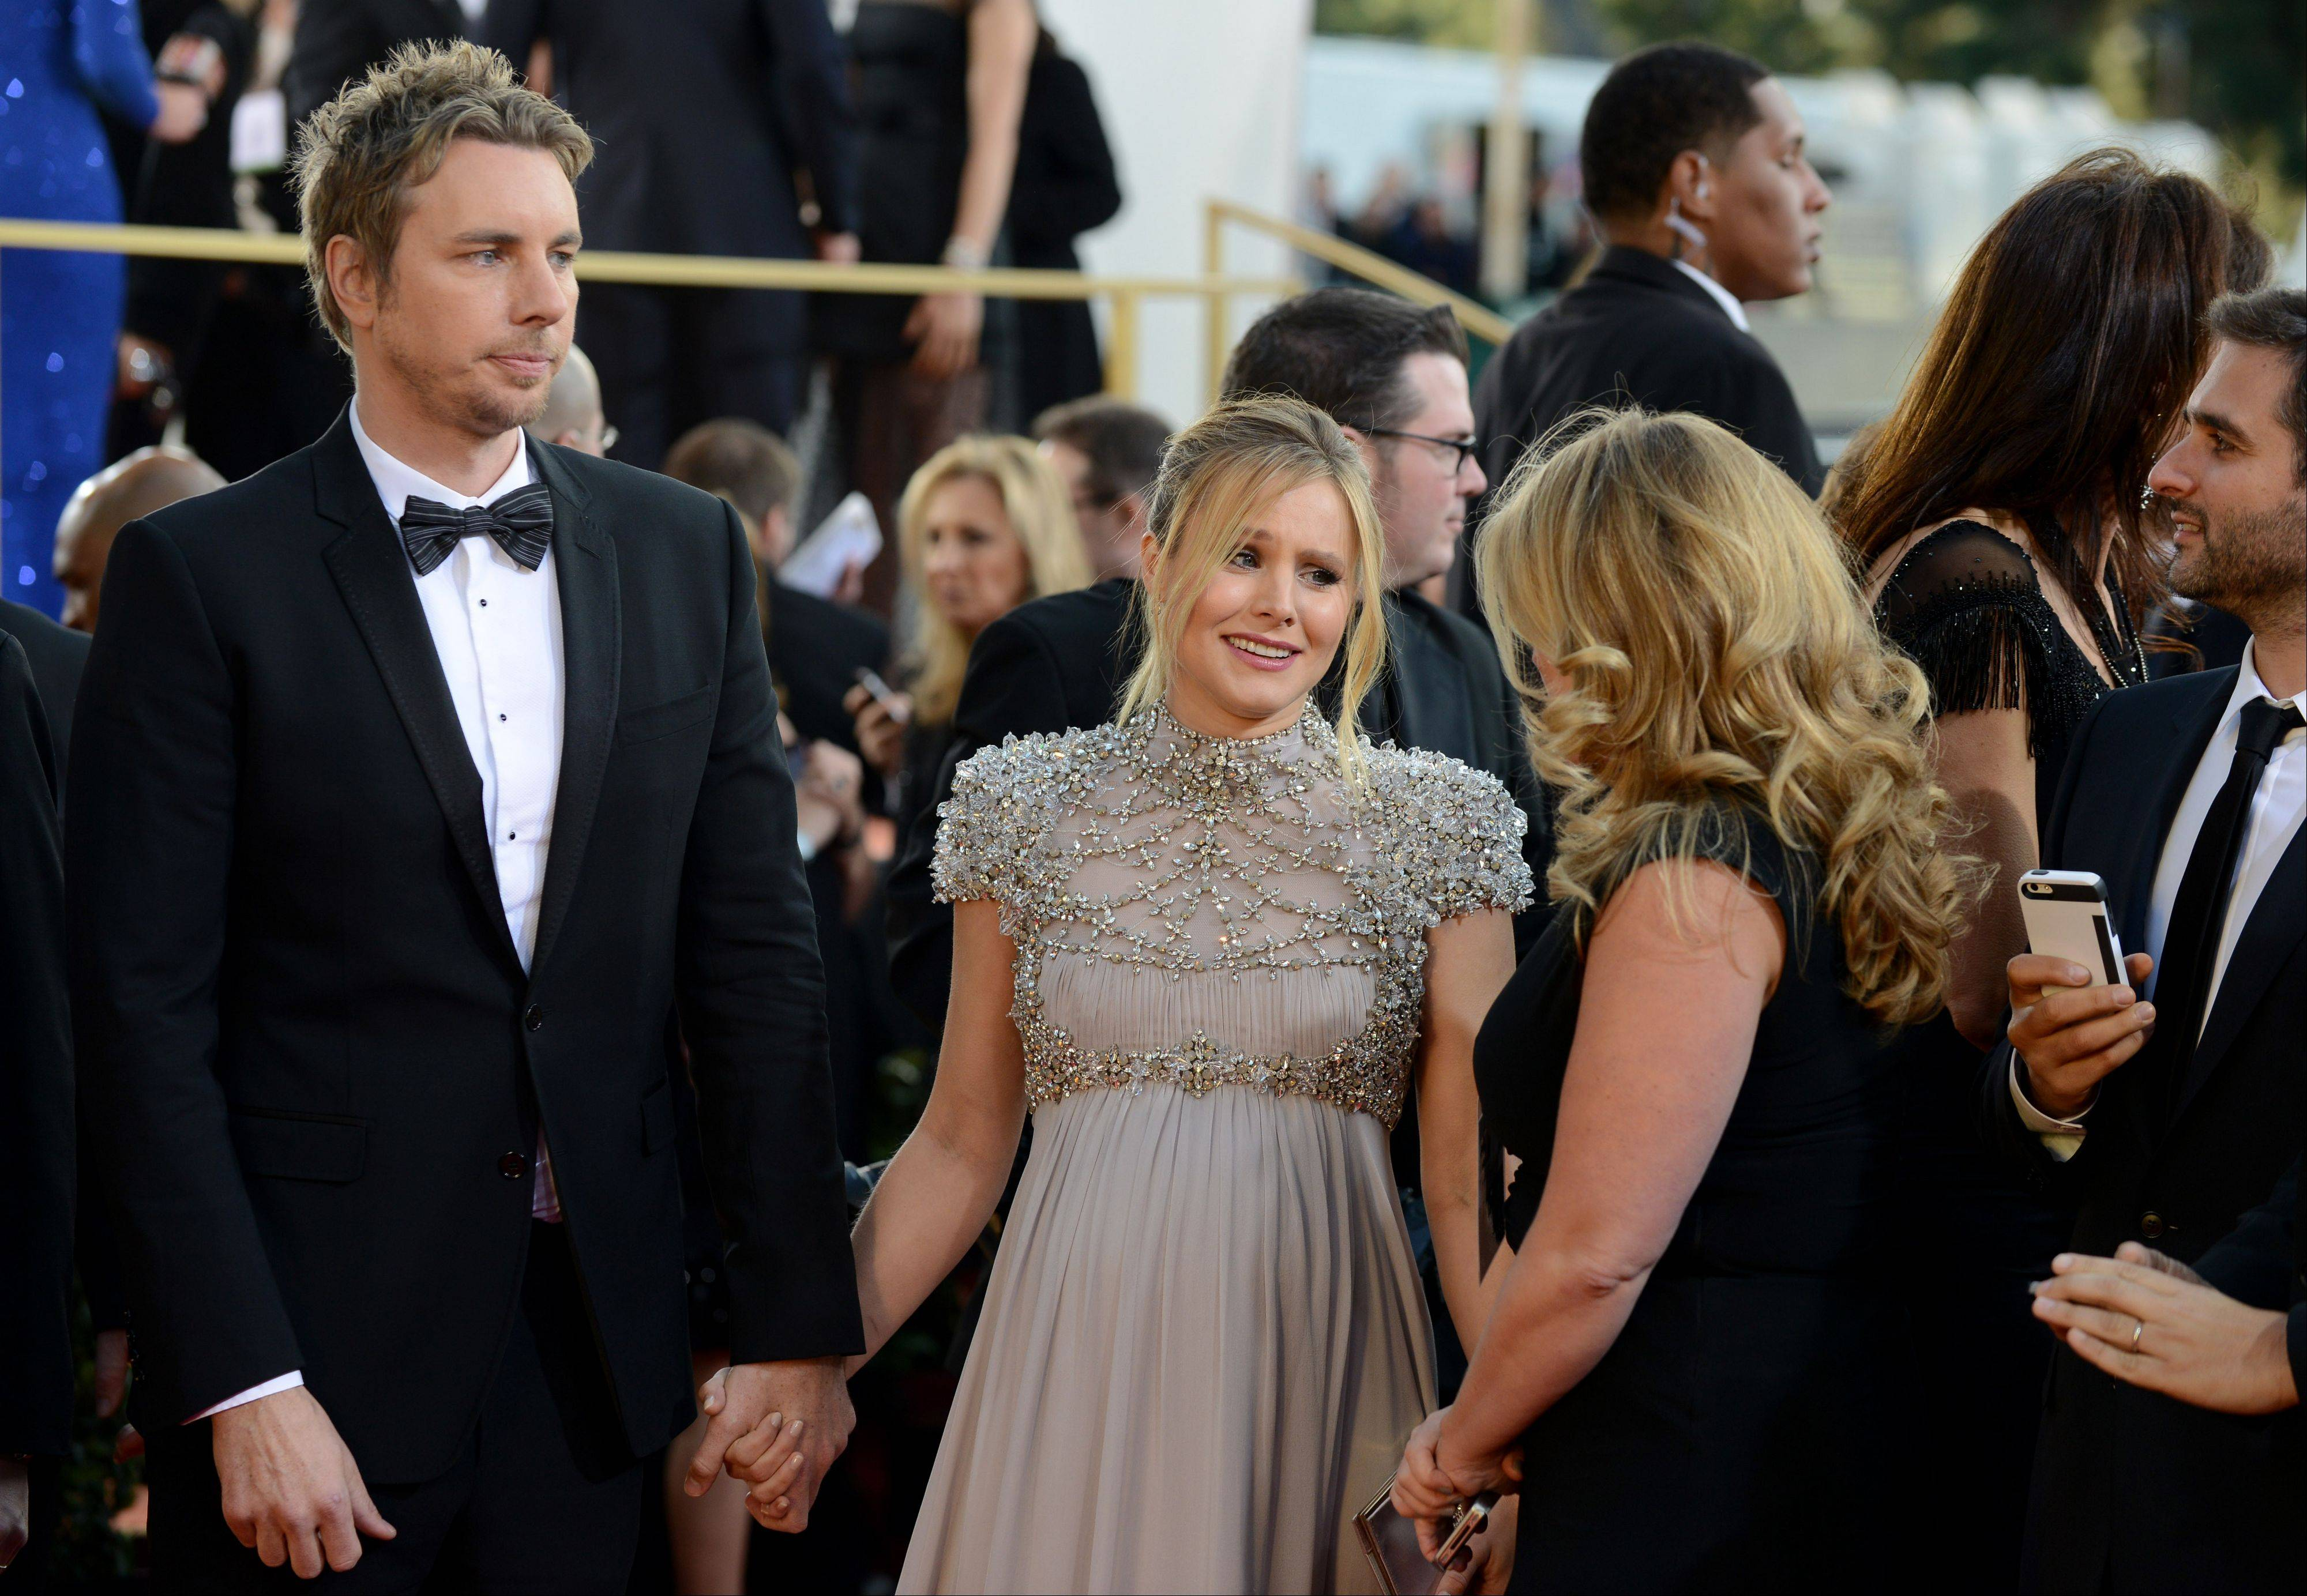 Actors Dax Shepard, left, and Kristen Bell arrive at the 70th Annual Golden Globe Awards at the Beverly Hilton Hotel on Sunday Jan. 13, 2013, in Beverly Hills, Calif.